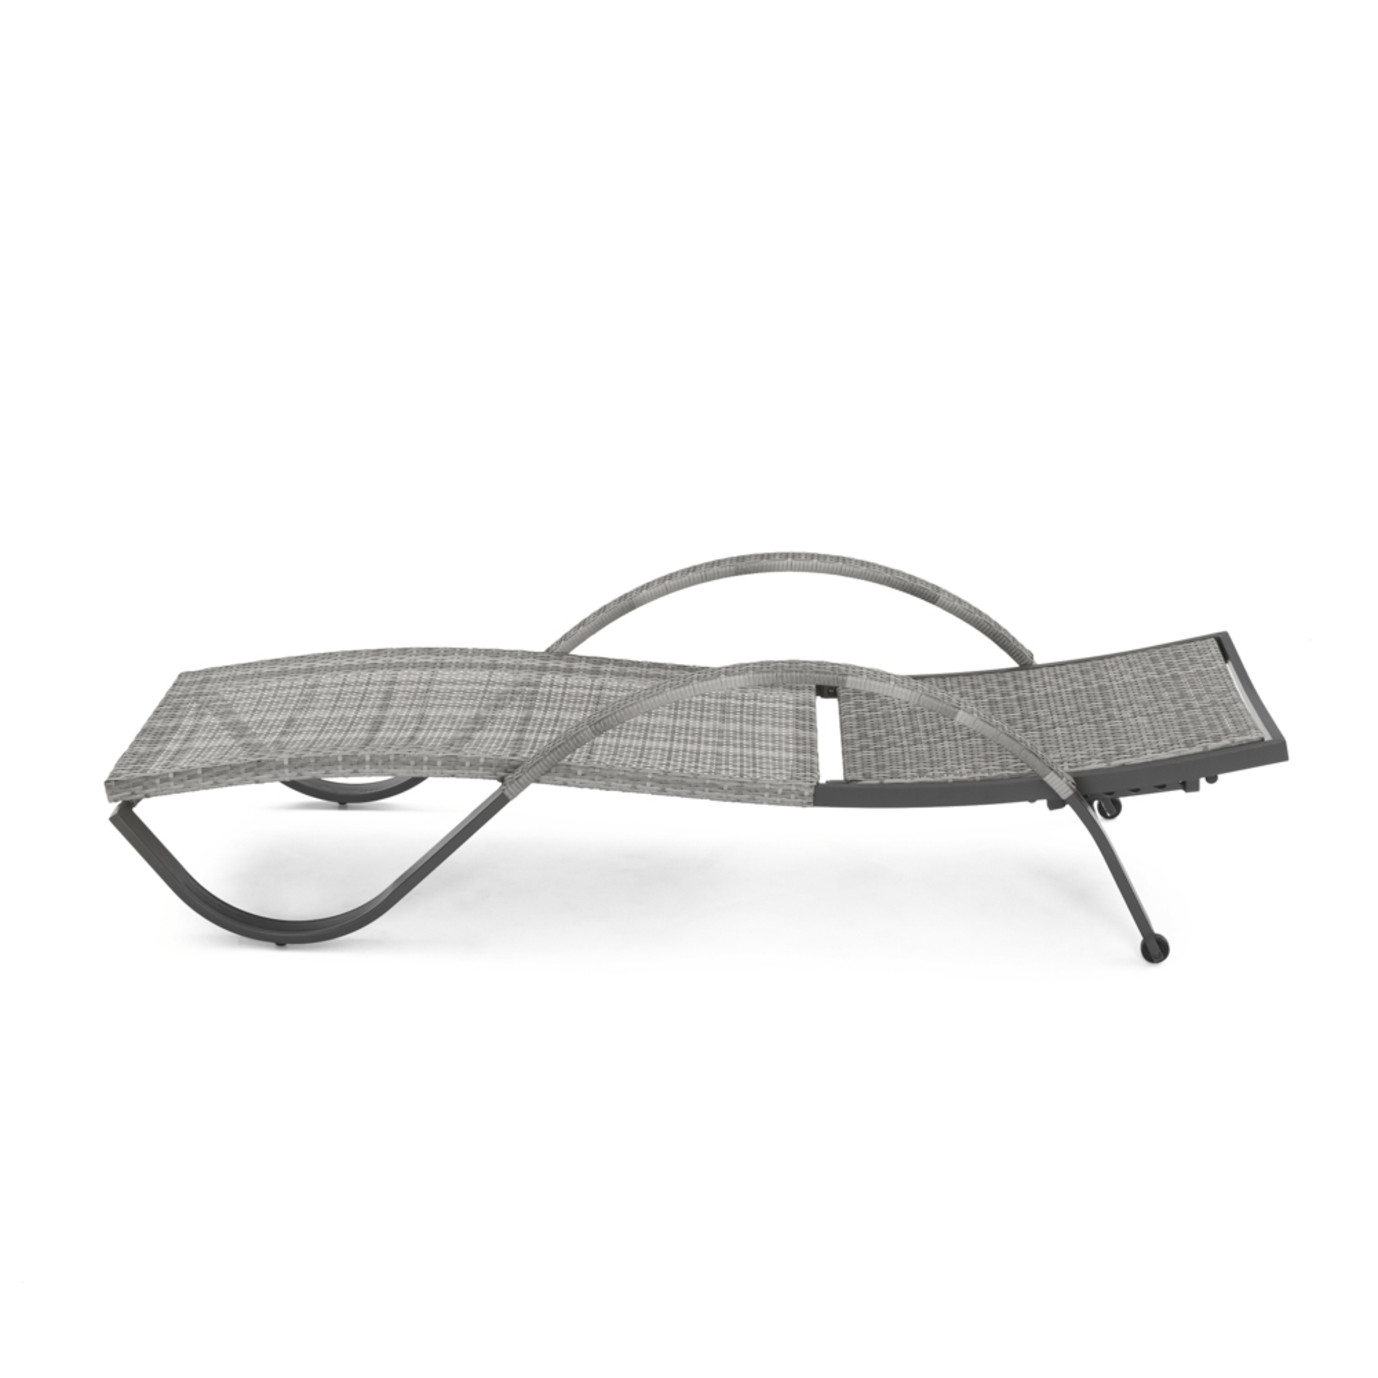 Cannes™ Chaise Lounges with Cushions - Slate Gray